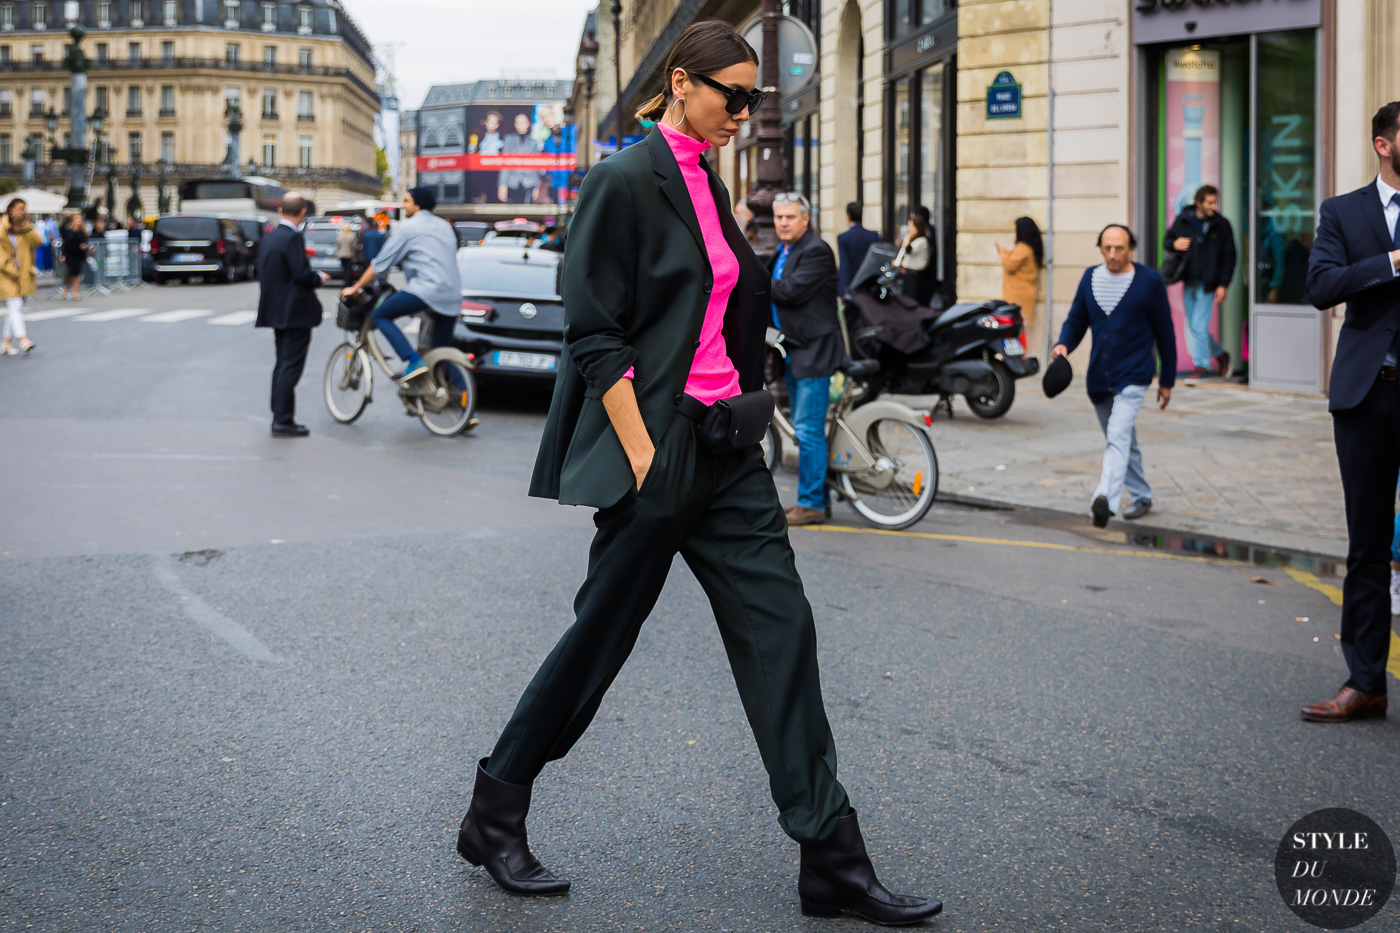 Julie Pelipas by STYLEDUMONDE Street Style Fashion Photography_48A9973